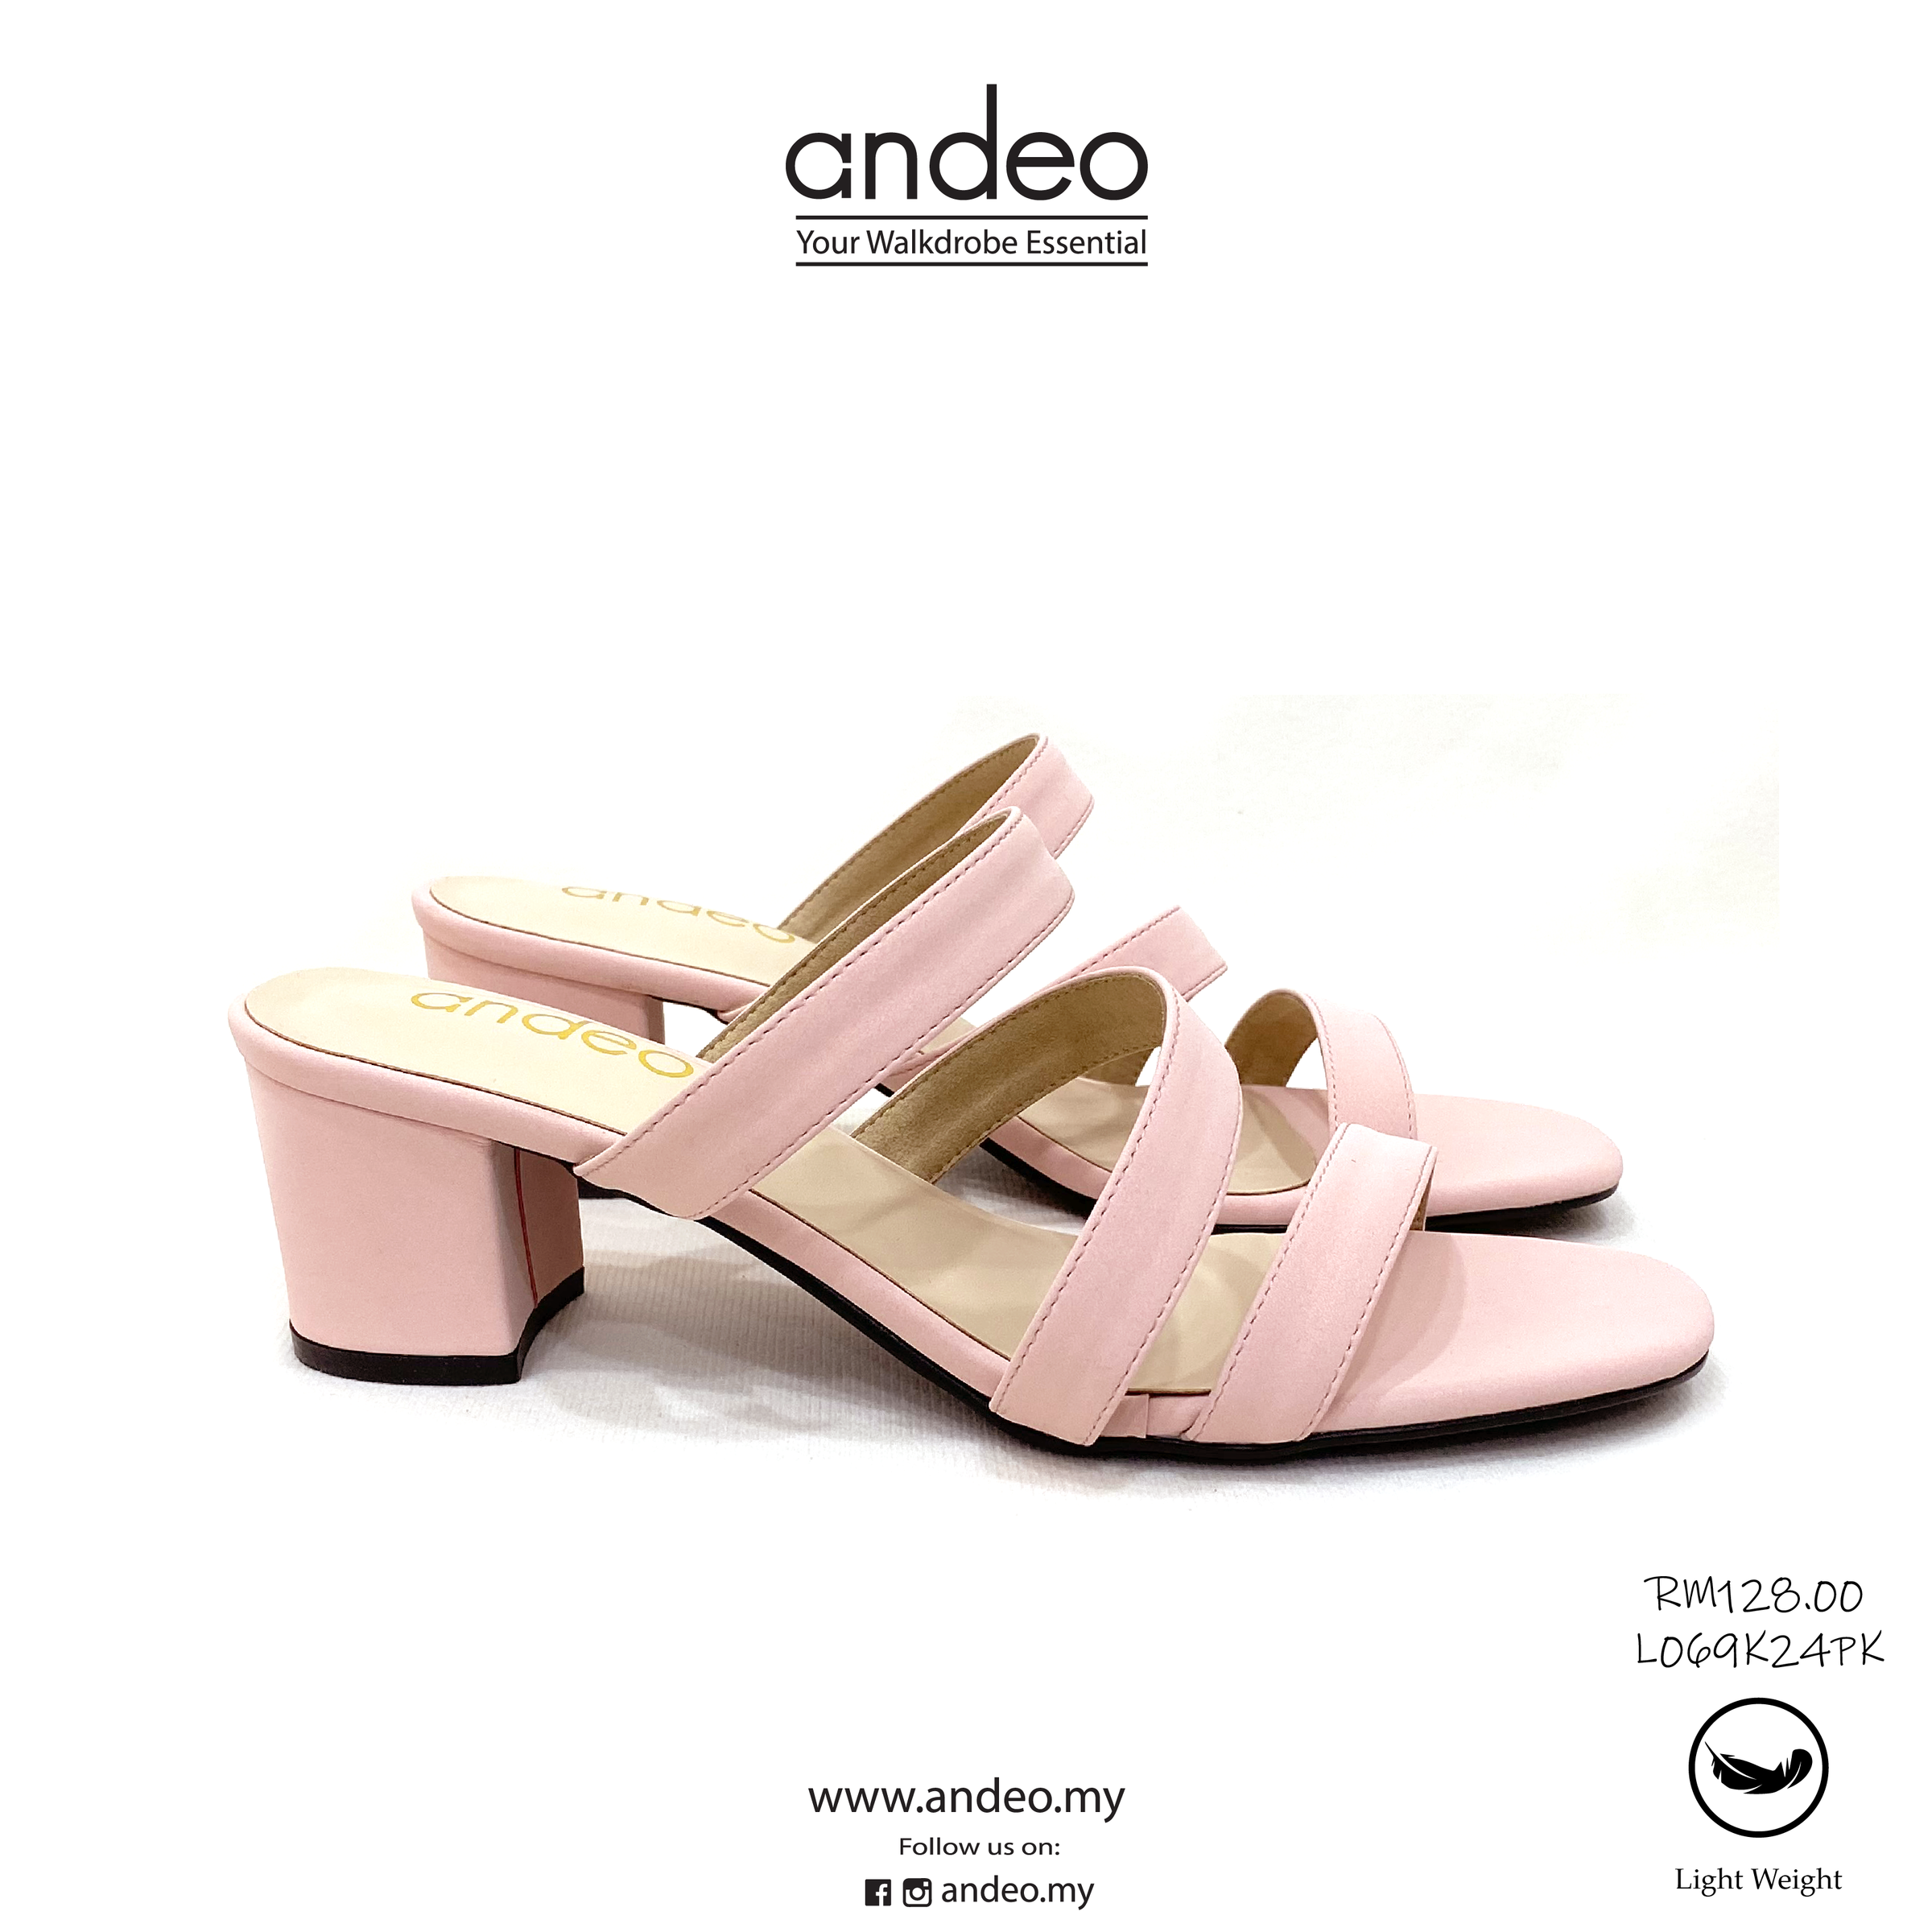 ANDEO FB PRODUCT L069K24-07.png